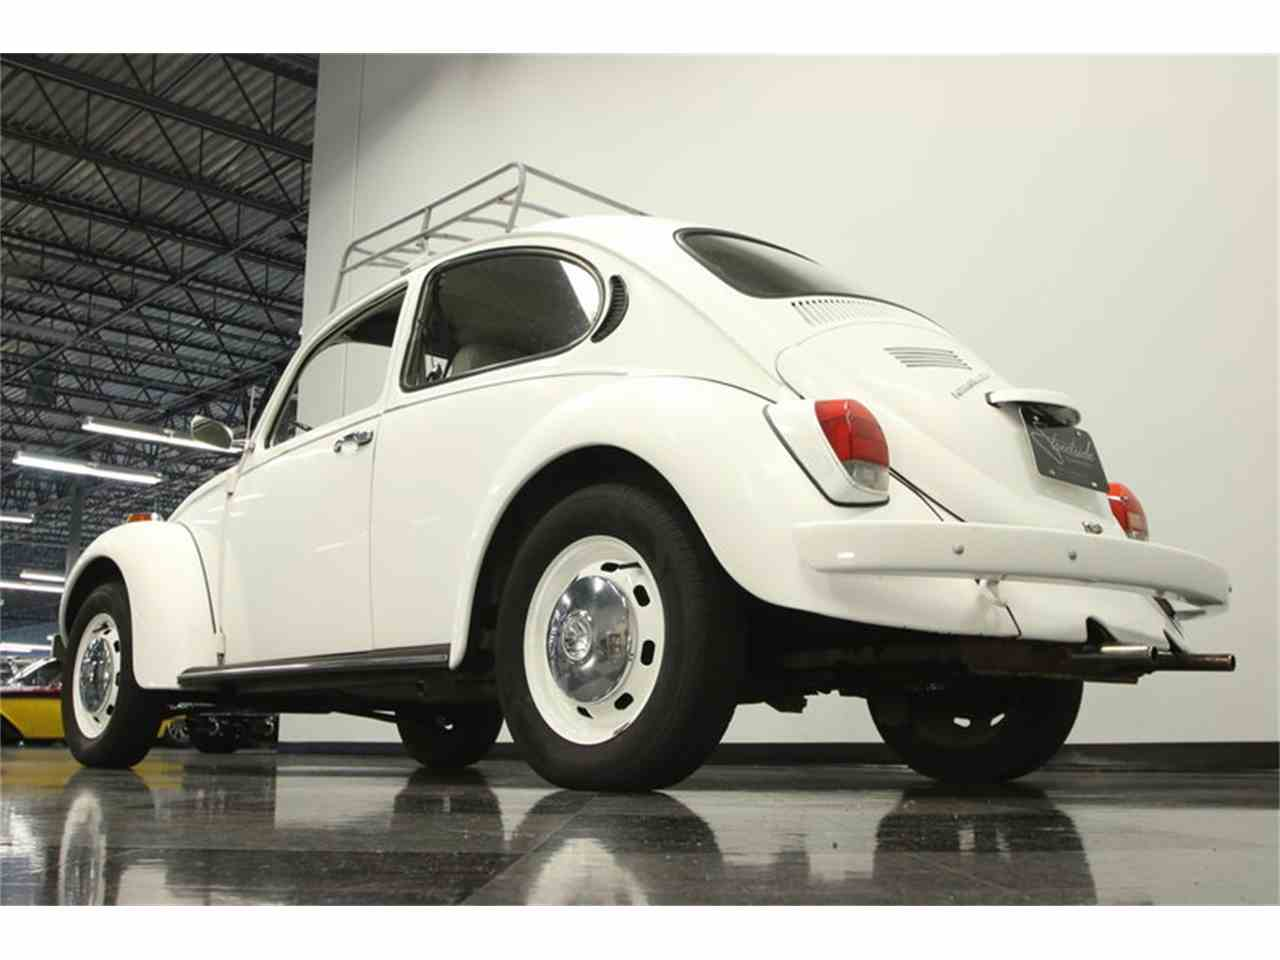 Large Picture of Classic 1971 Volkswagen Super Beetle located in Lutz Florida - $9,995.00 - MF74